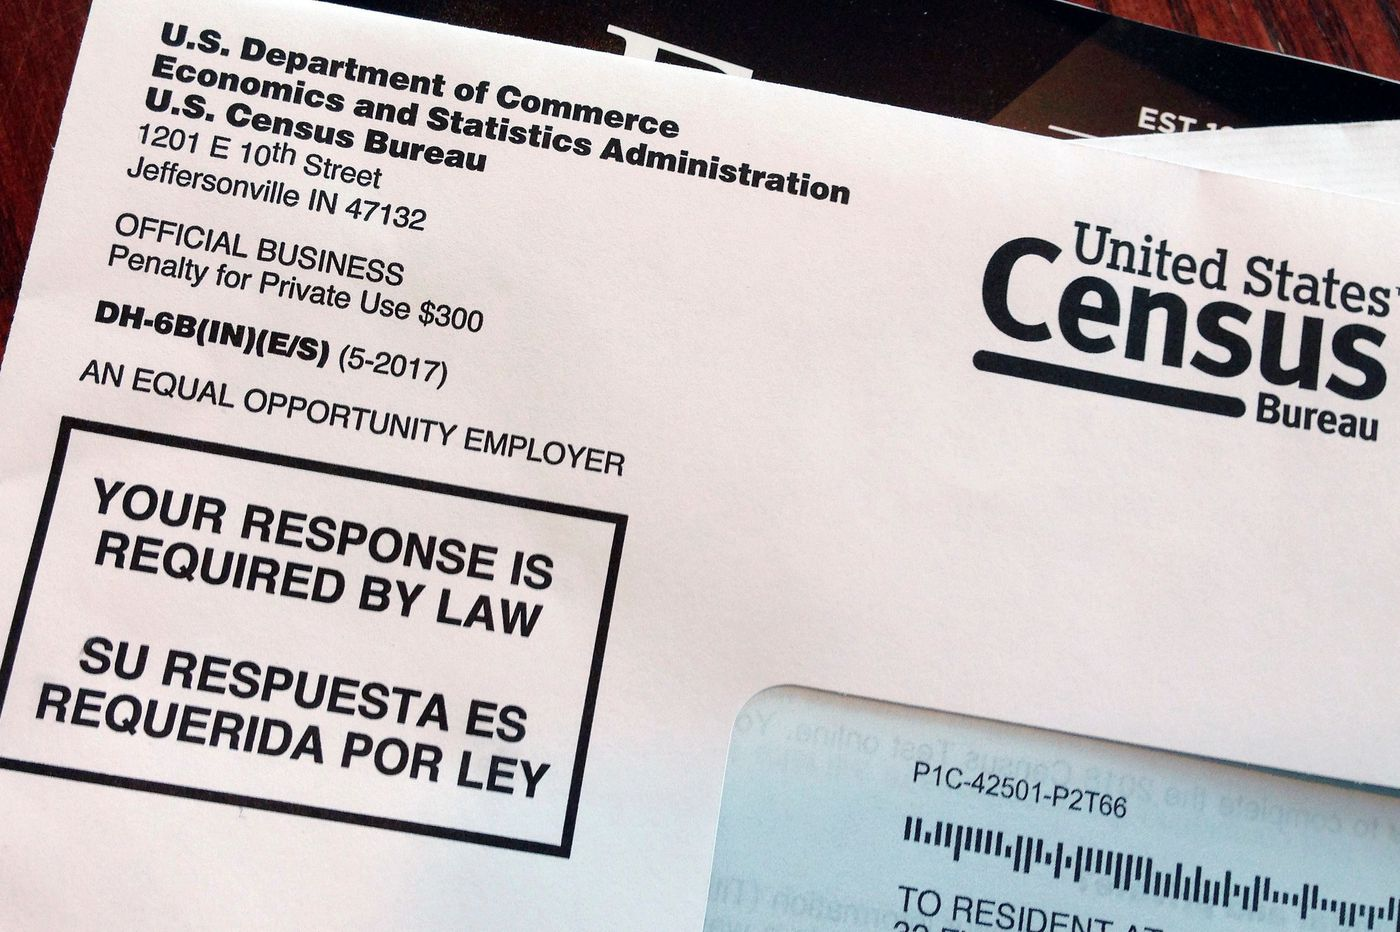 Census 2020: How going digital could undercount those who need the census most | Opinion